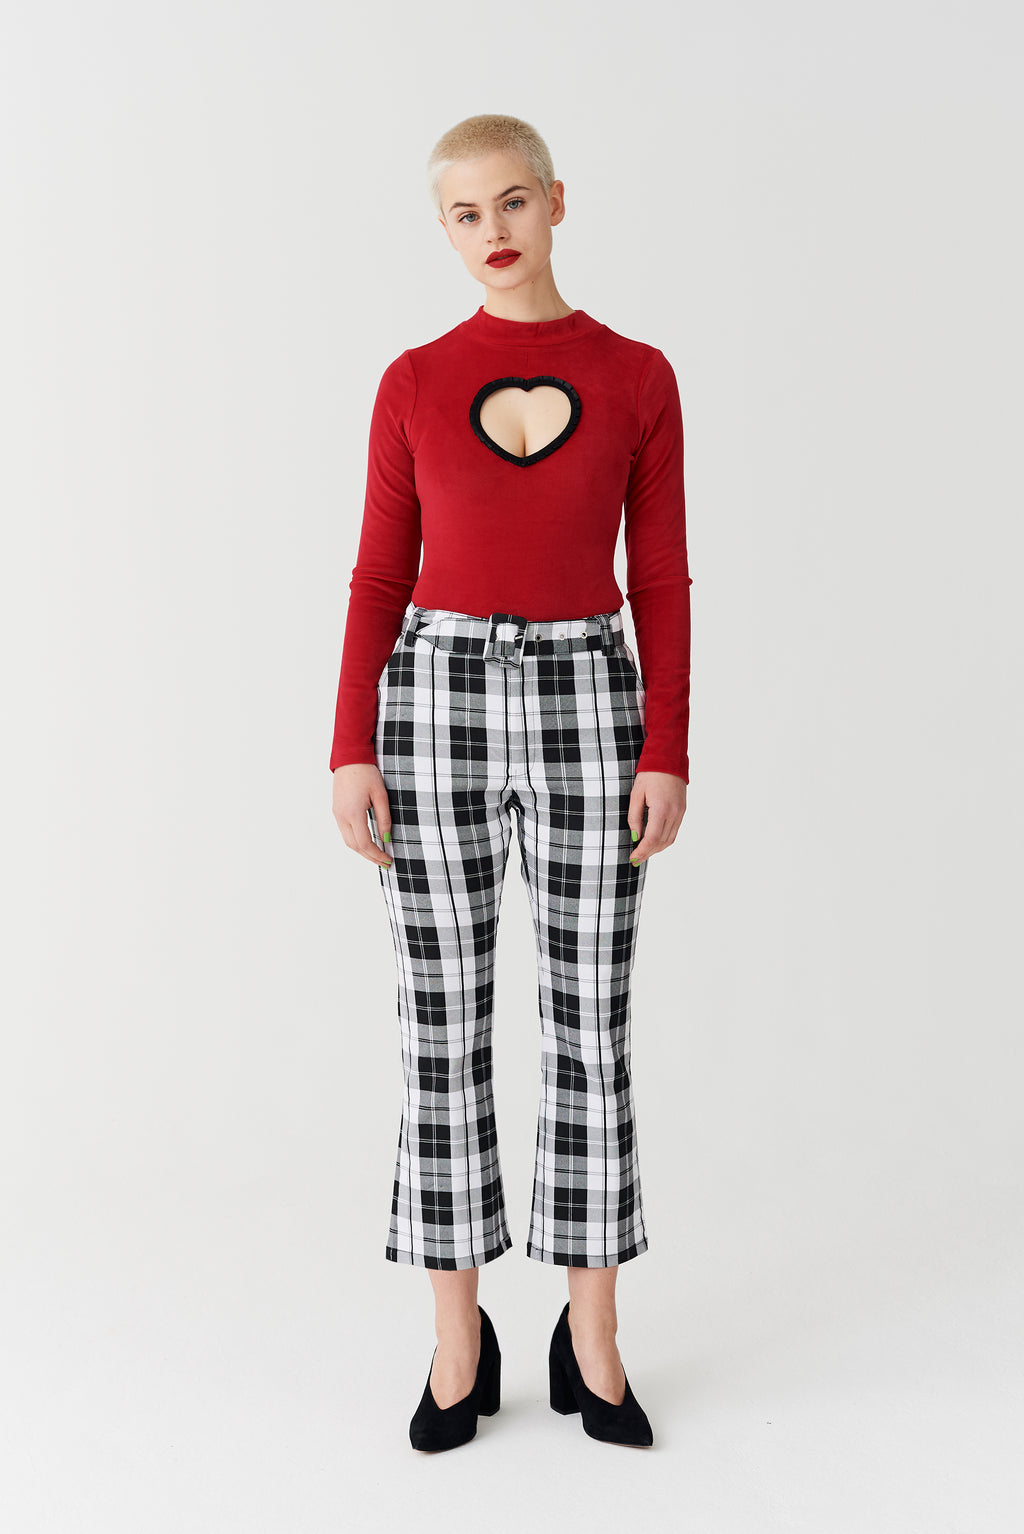 Lazy Oaf Black & White Check Kick Flare Trousers